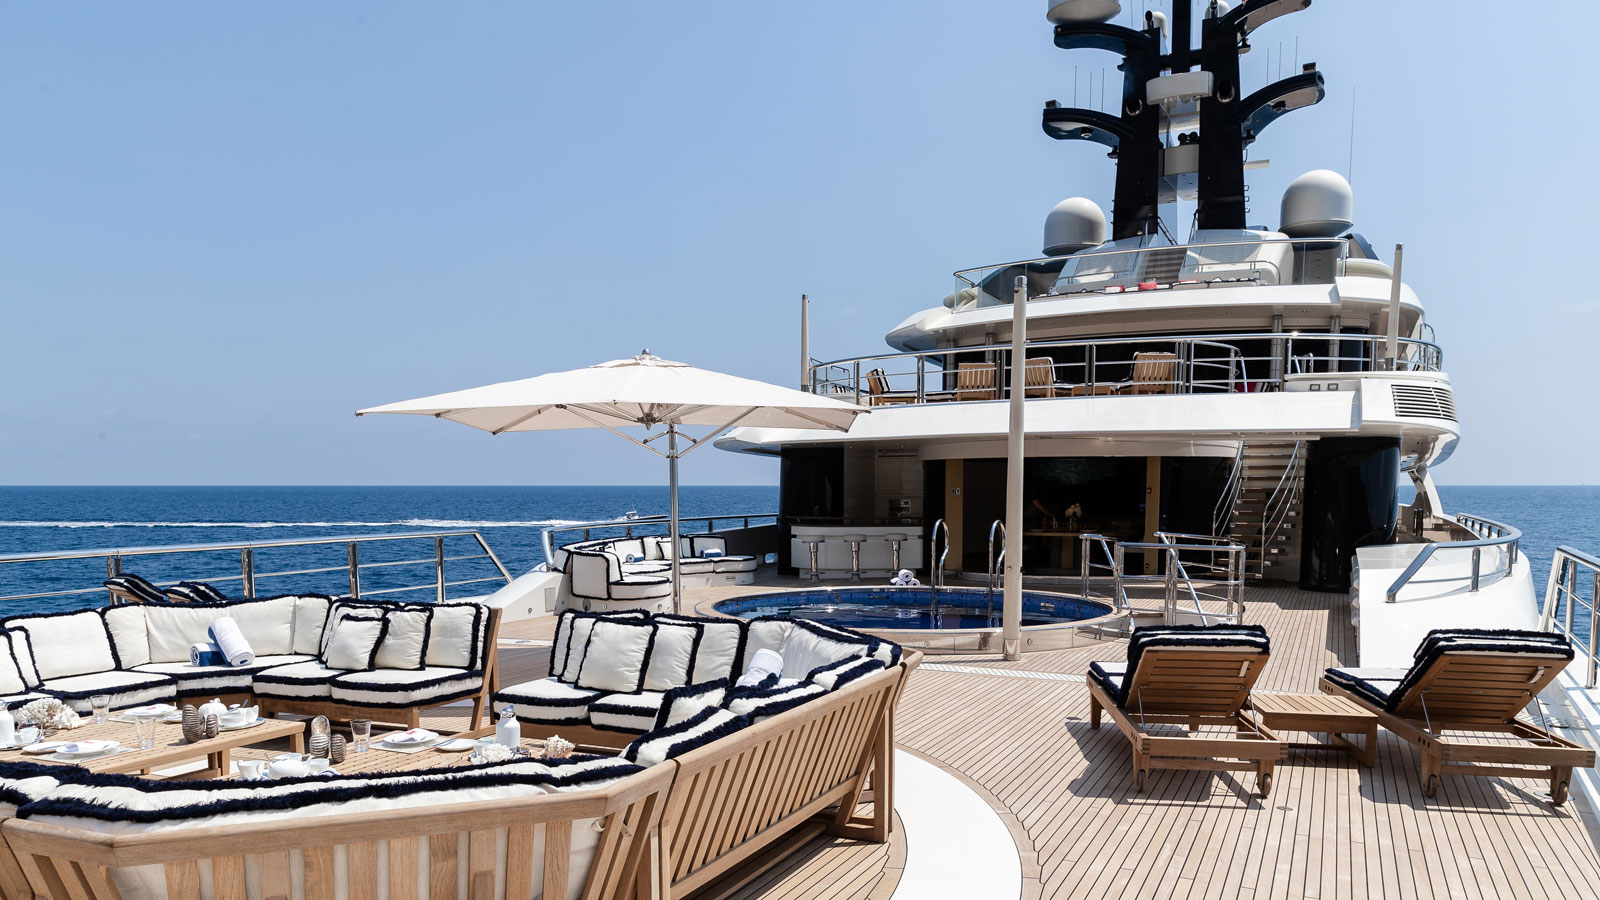 kylie-jenner-birthday-superyacht-italy-tranquility-equanimity